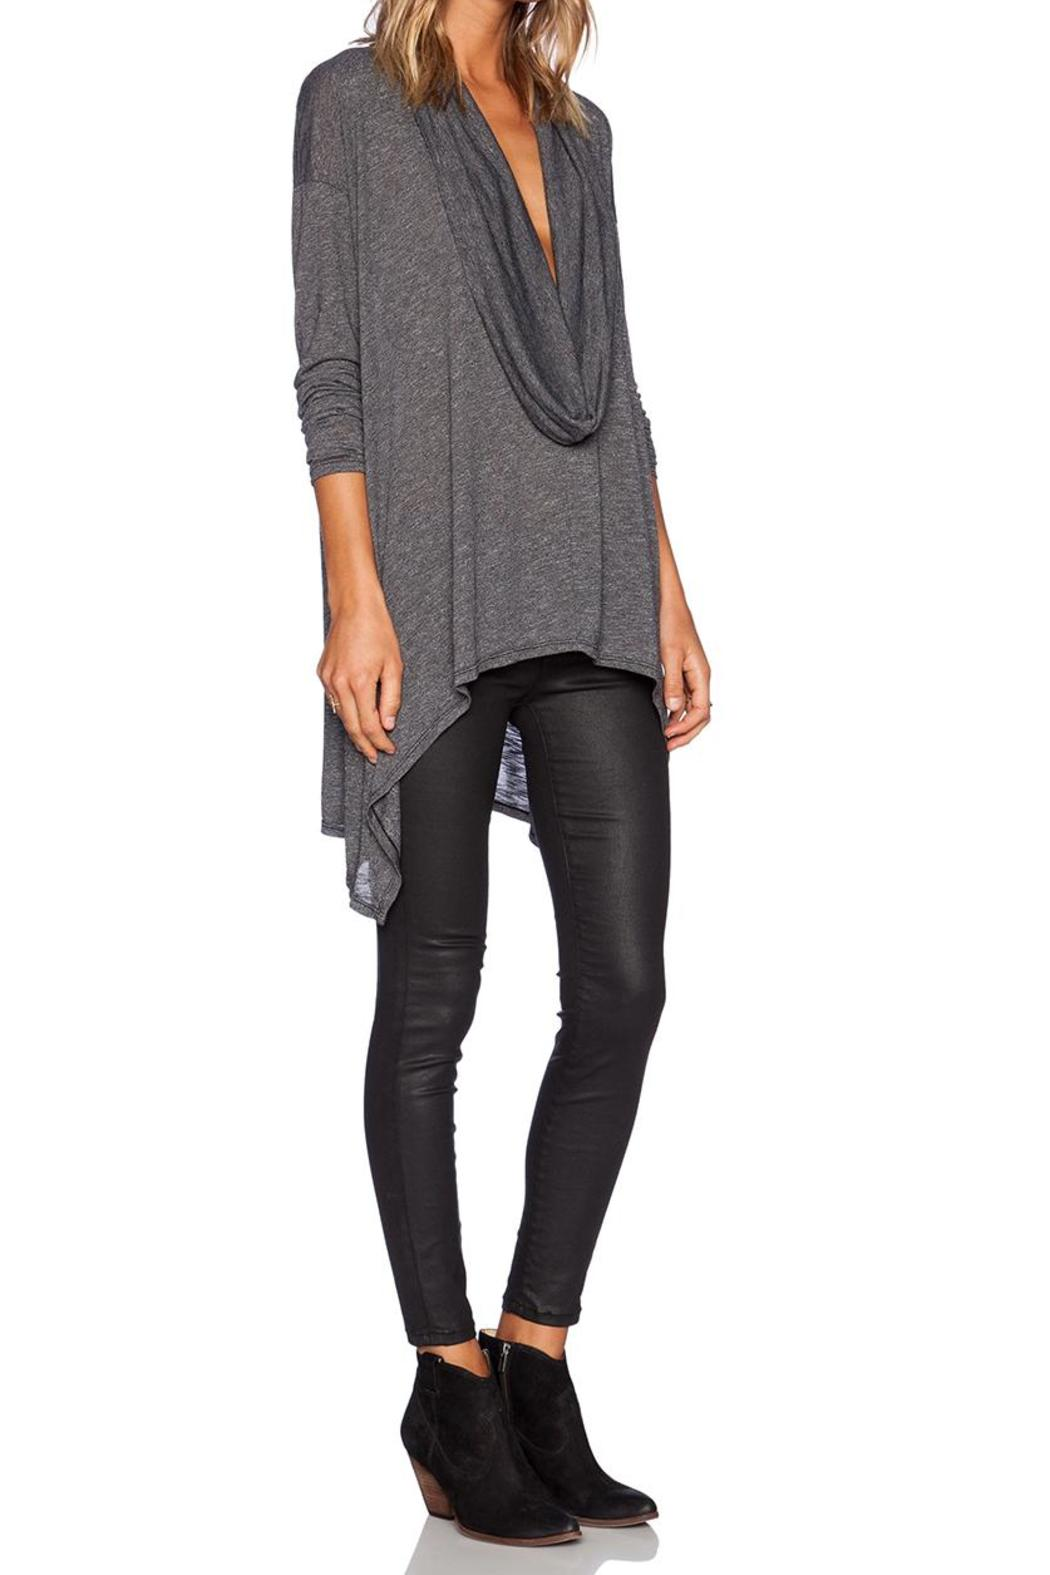 Michael Stars Cowl Neck Poncho - Front Full Image